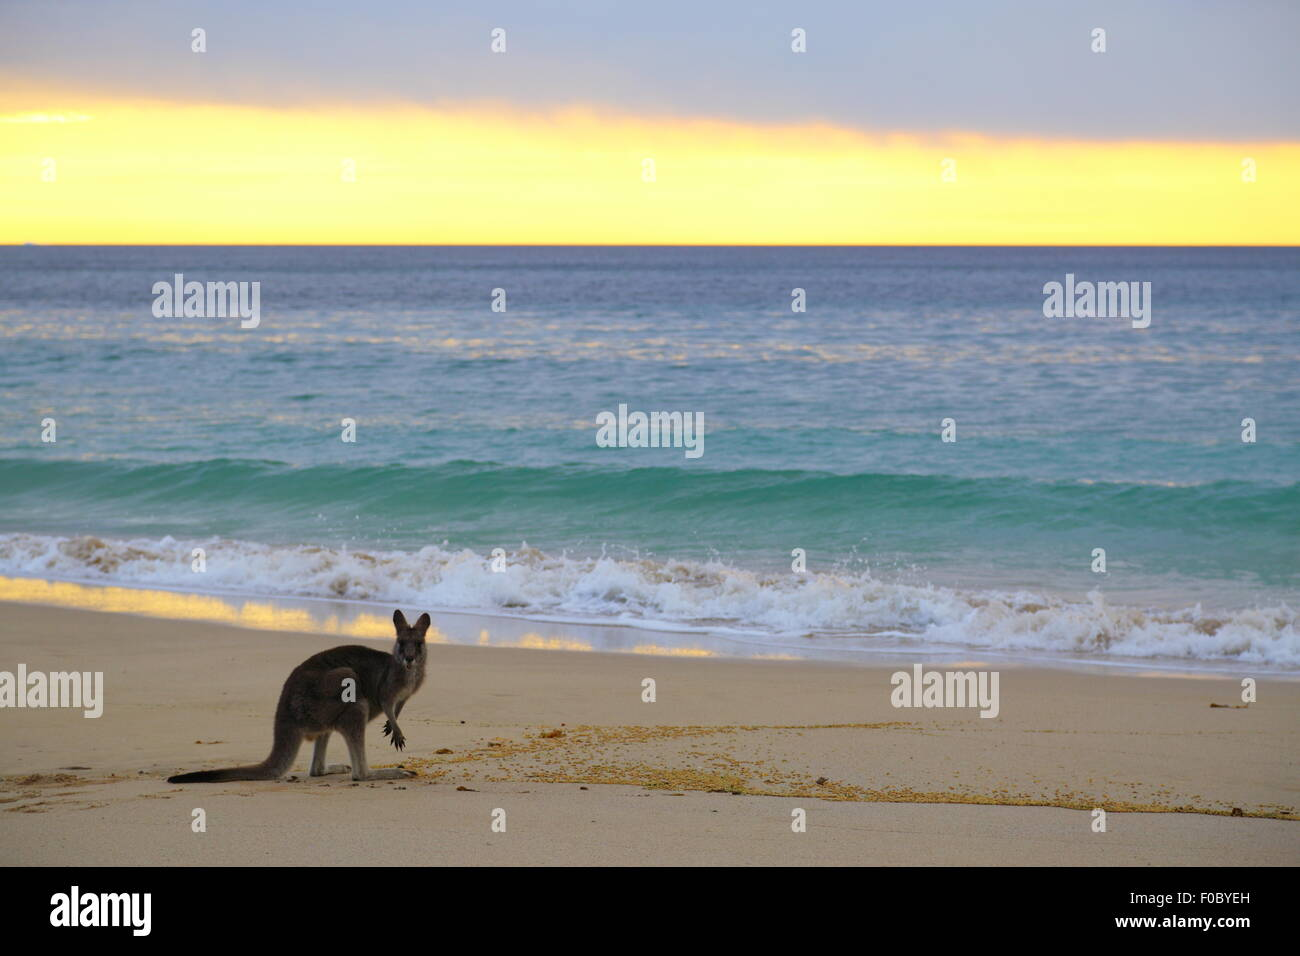 A single kangaroo on the beach at Depot Beach in Murramarang National Park, New South Wales, Australia. Stock Photo